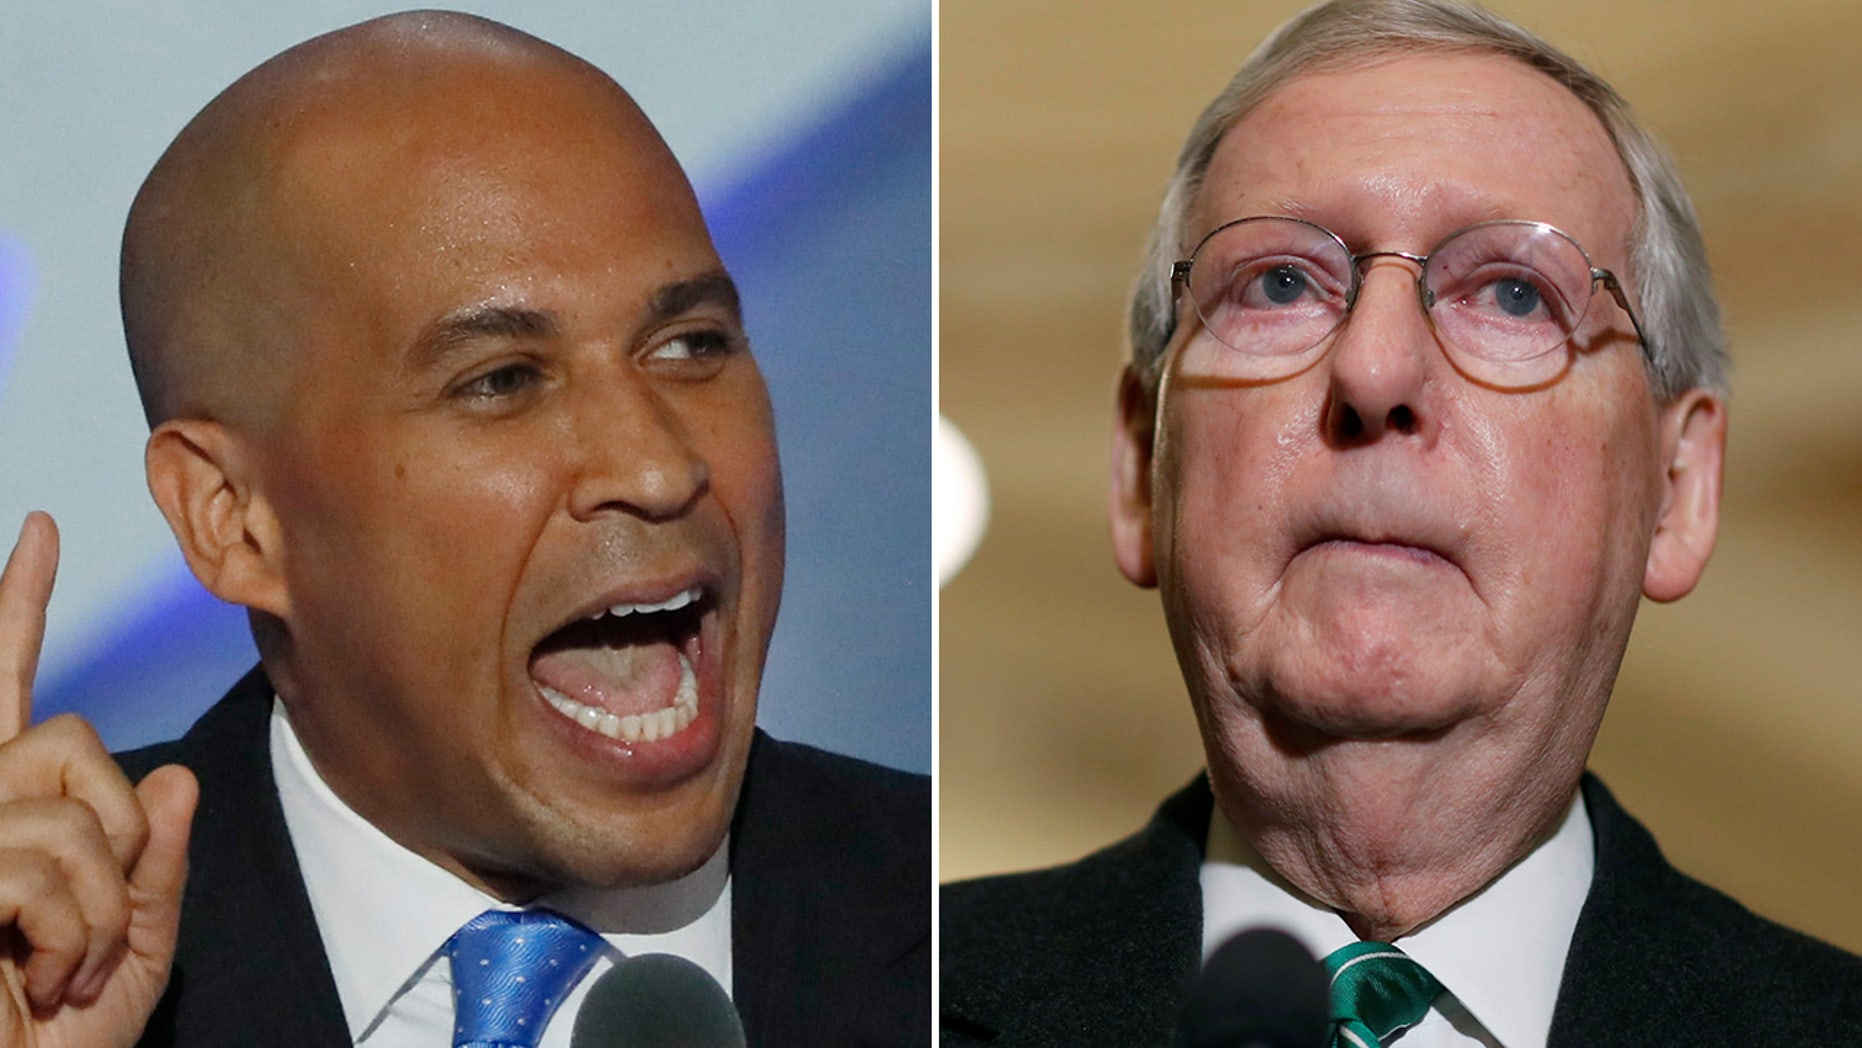 Sen. Cory Booker, D-N.J., left, remained hopeful Wednesday that Senate Majority Leader Mitch McConnell, R-Ky., would bring to the Senate floor legislation designed to protect Special Counsel Robert Mueller from being fired.